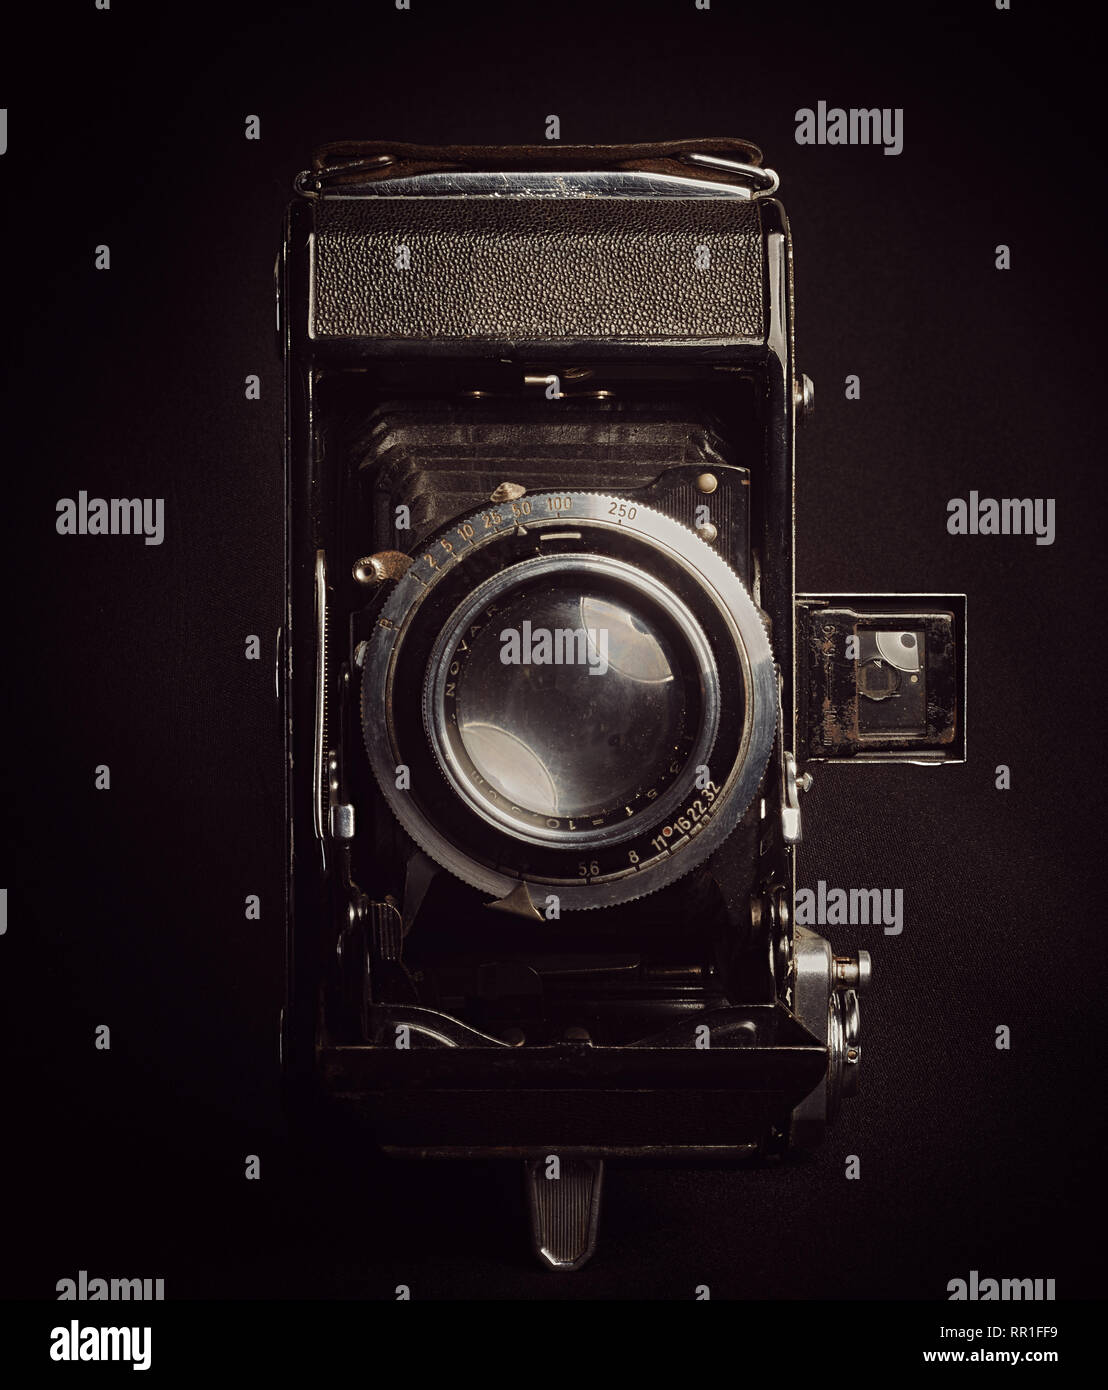 Vertical aspect front view of an unbranded vintage bellows film camera against a black background. - Stock Image